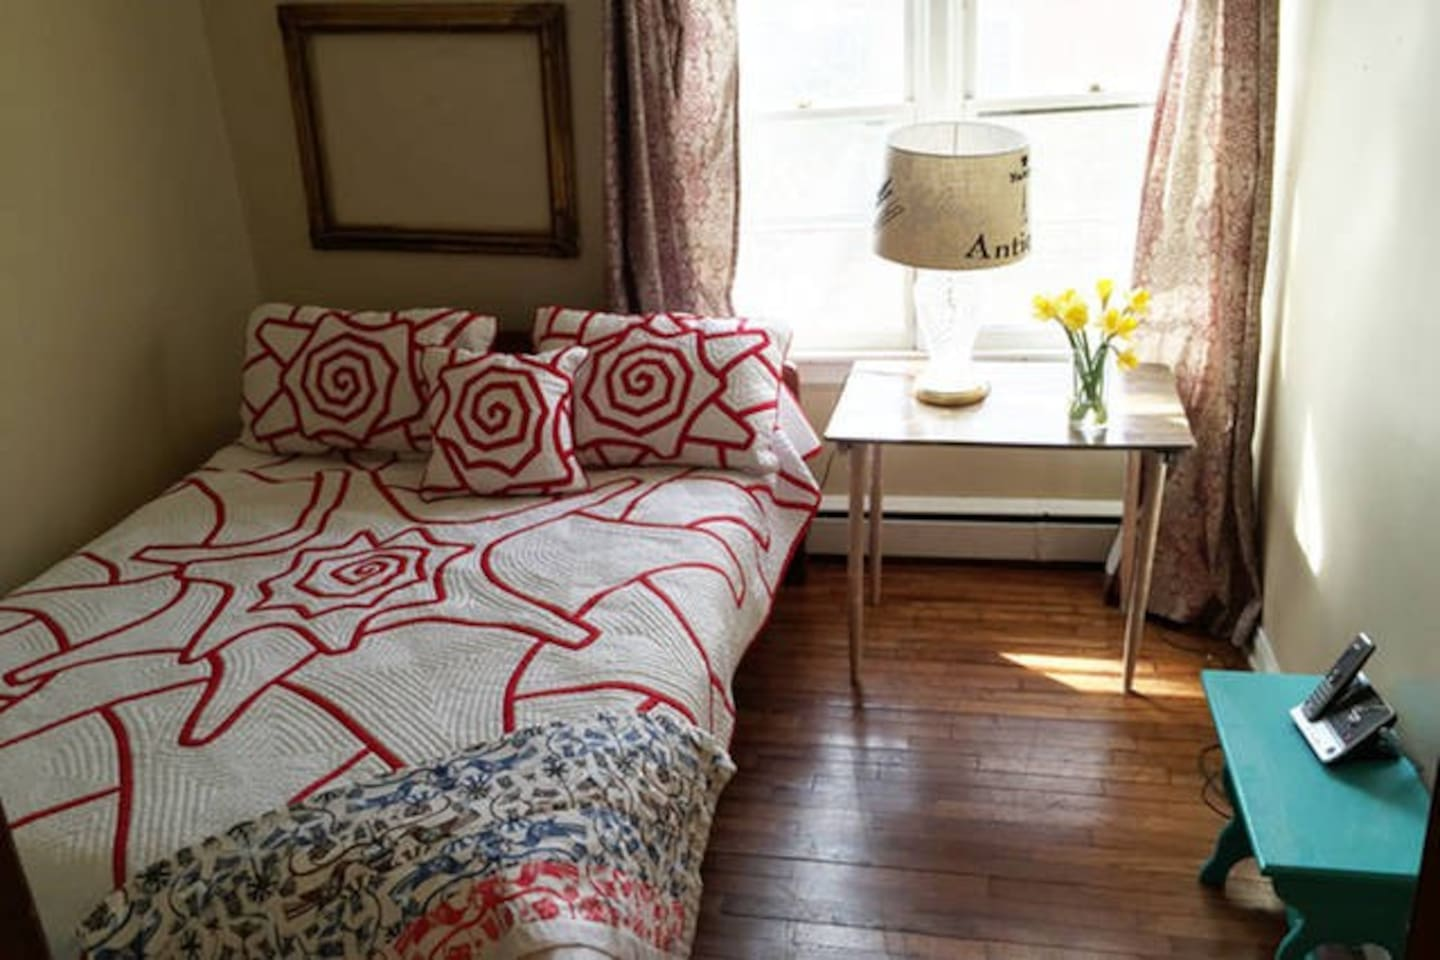 Queen size bed with Ralph Lauren linens. Two windows, wood floors . solid wood bed frame is a little low at 19 inches high.